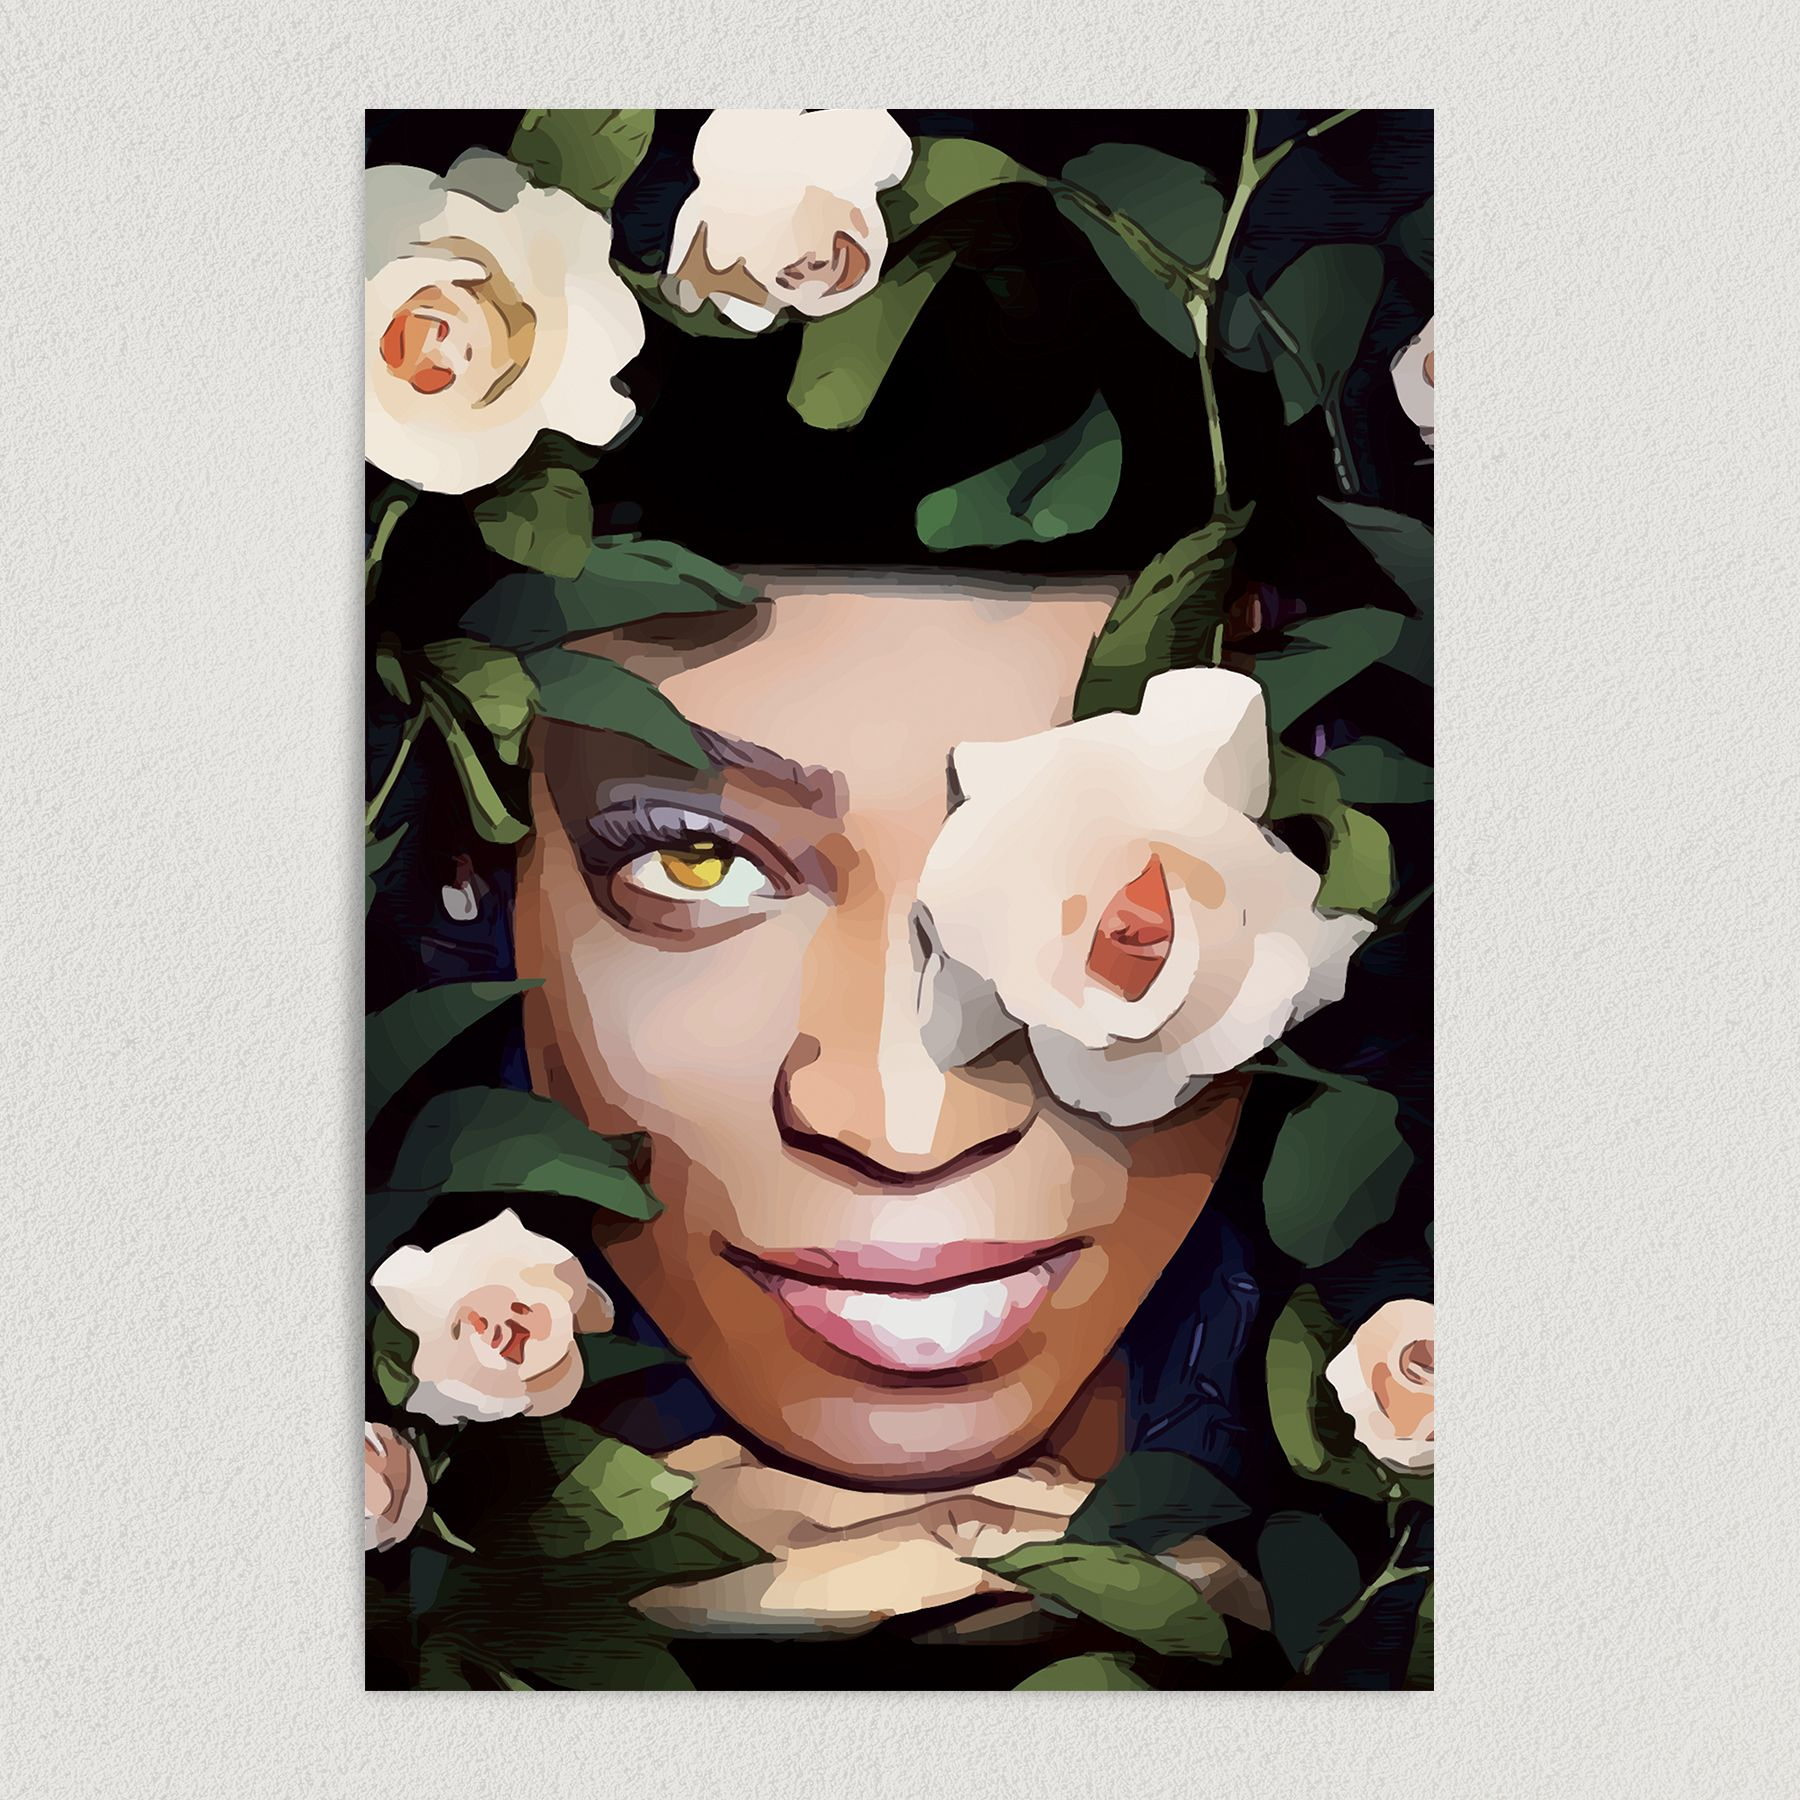 Women's Empowerment Face In Flowers Art Print Poster PC1000